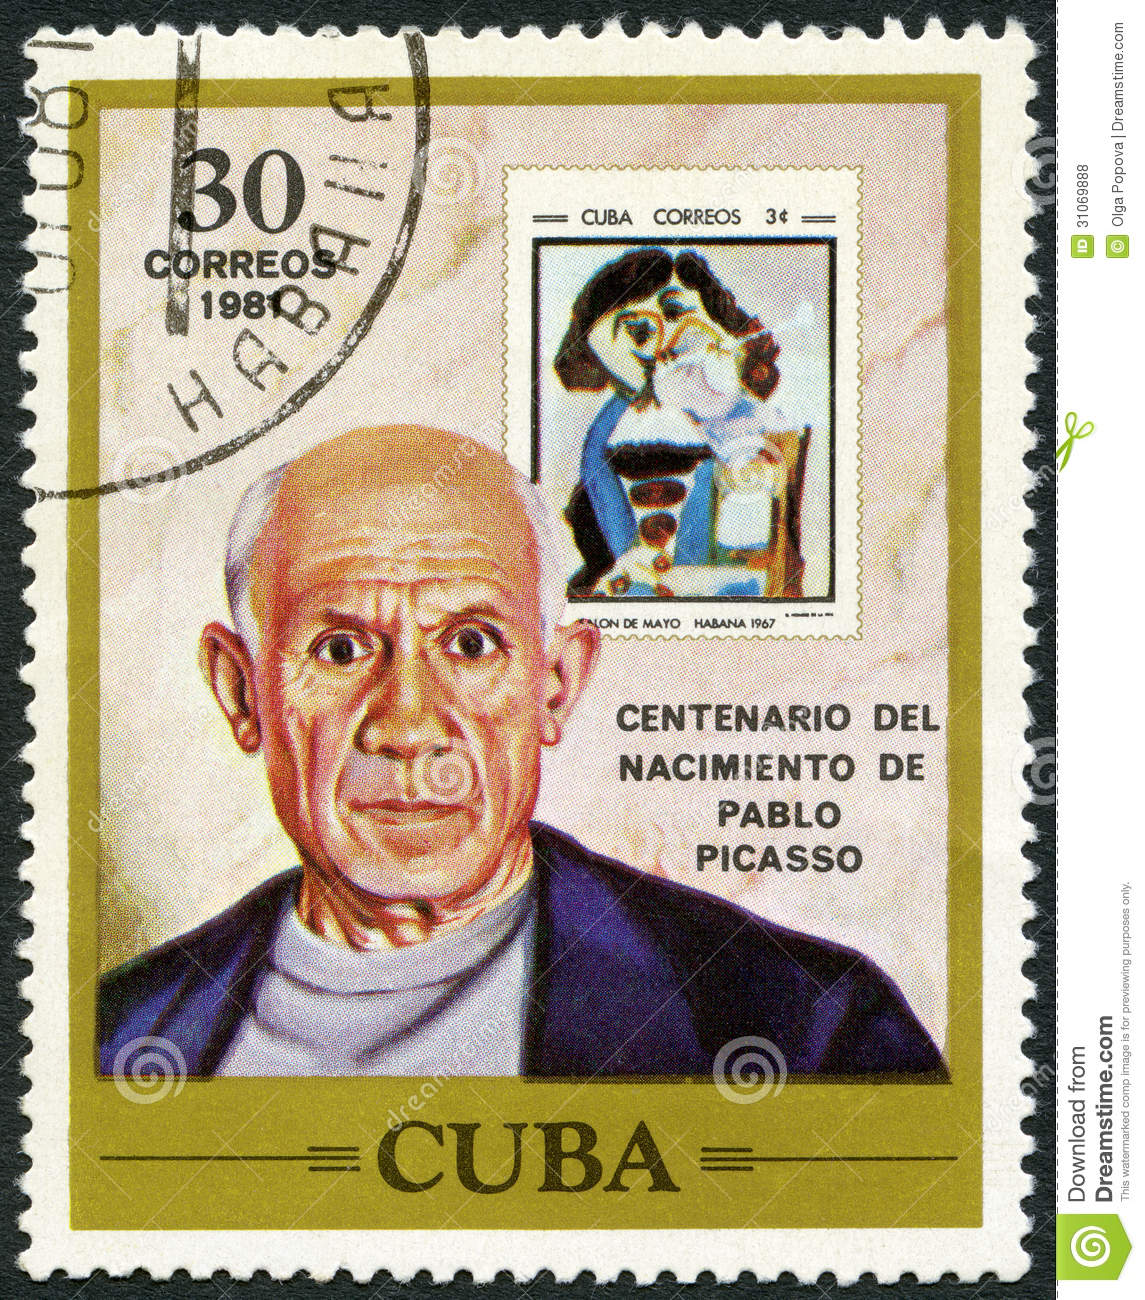 CUBA - 1981: shows Pablo Picasso (1881-1973), artist, birth centenary, and postage stamp shows The Man with the Pipe, by Picasso